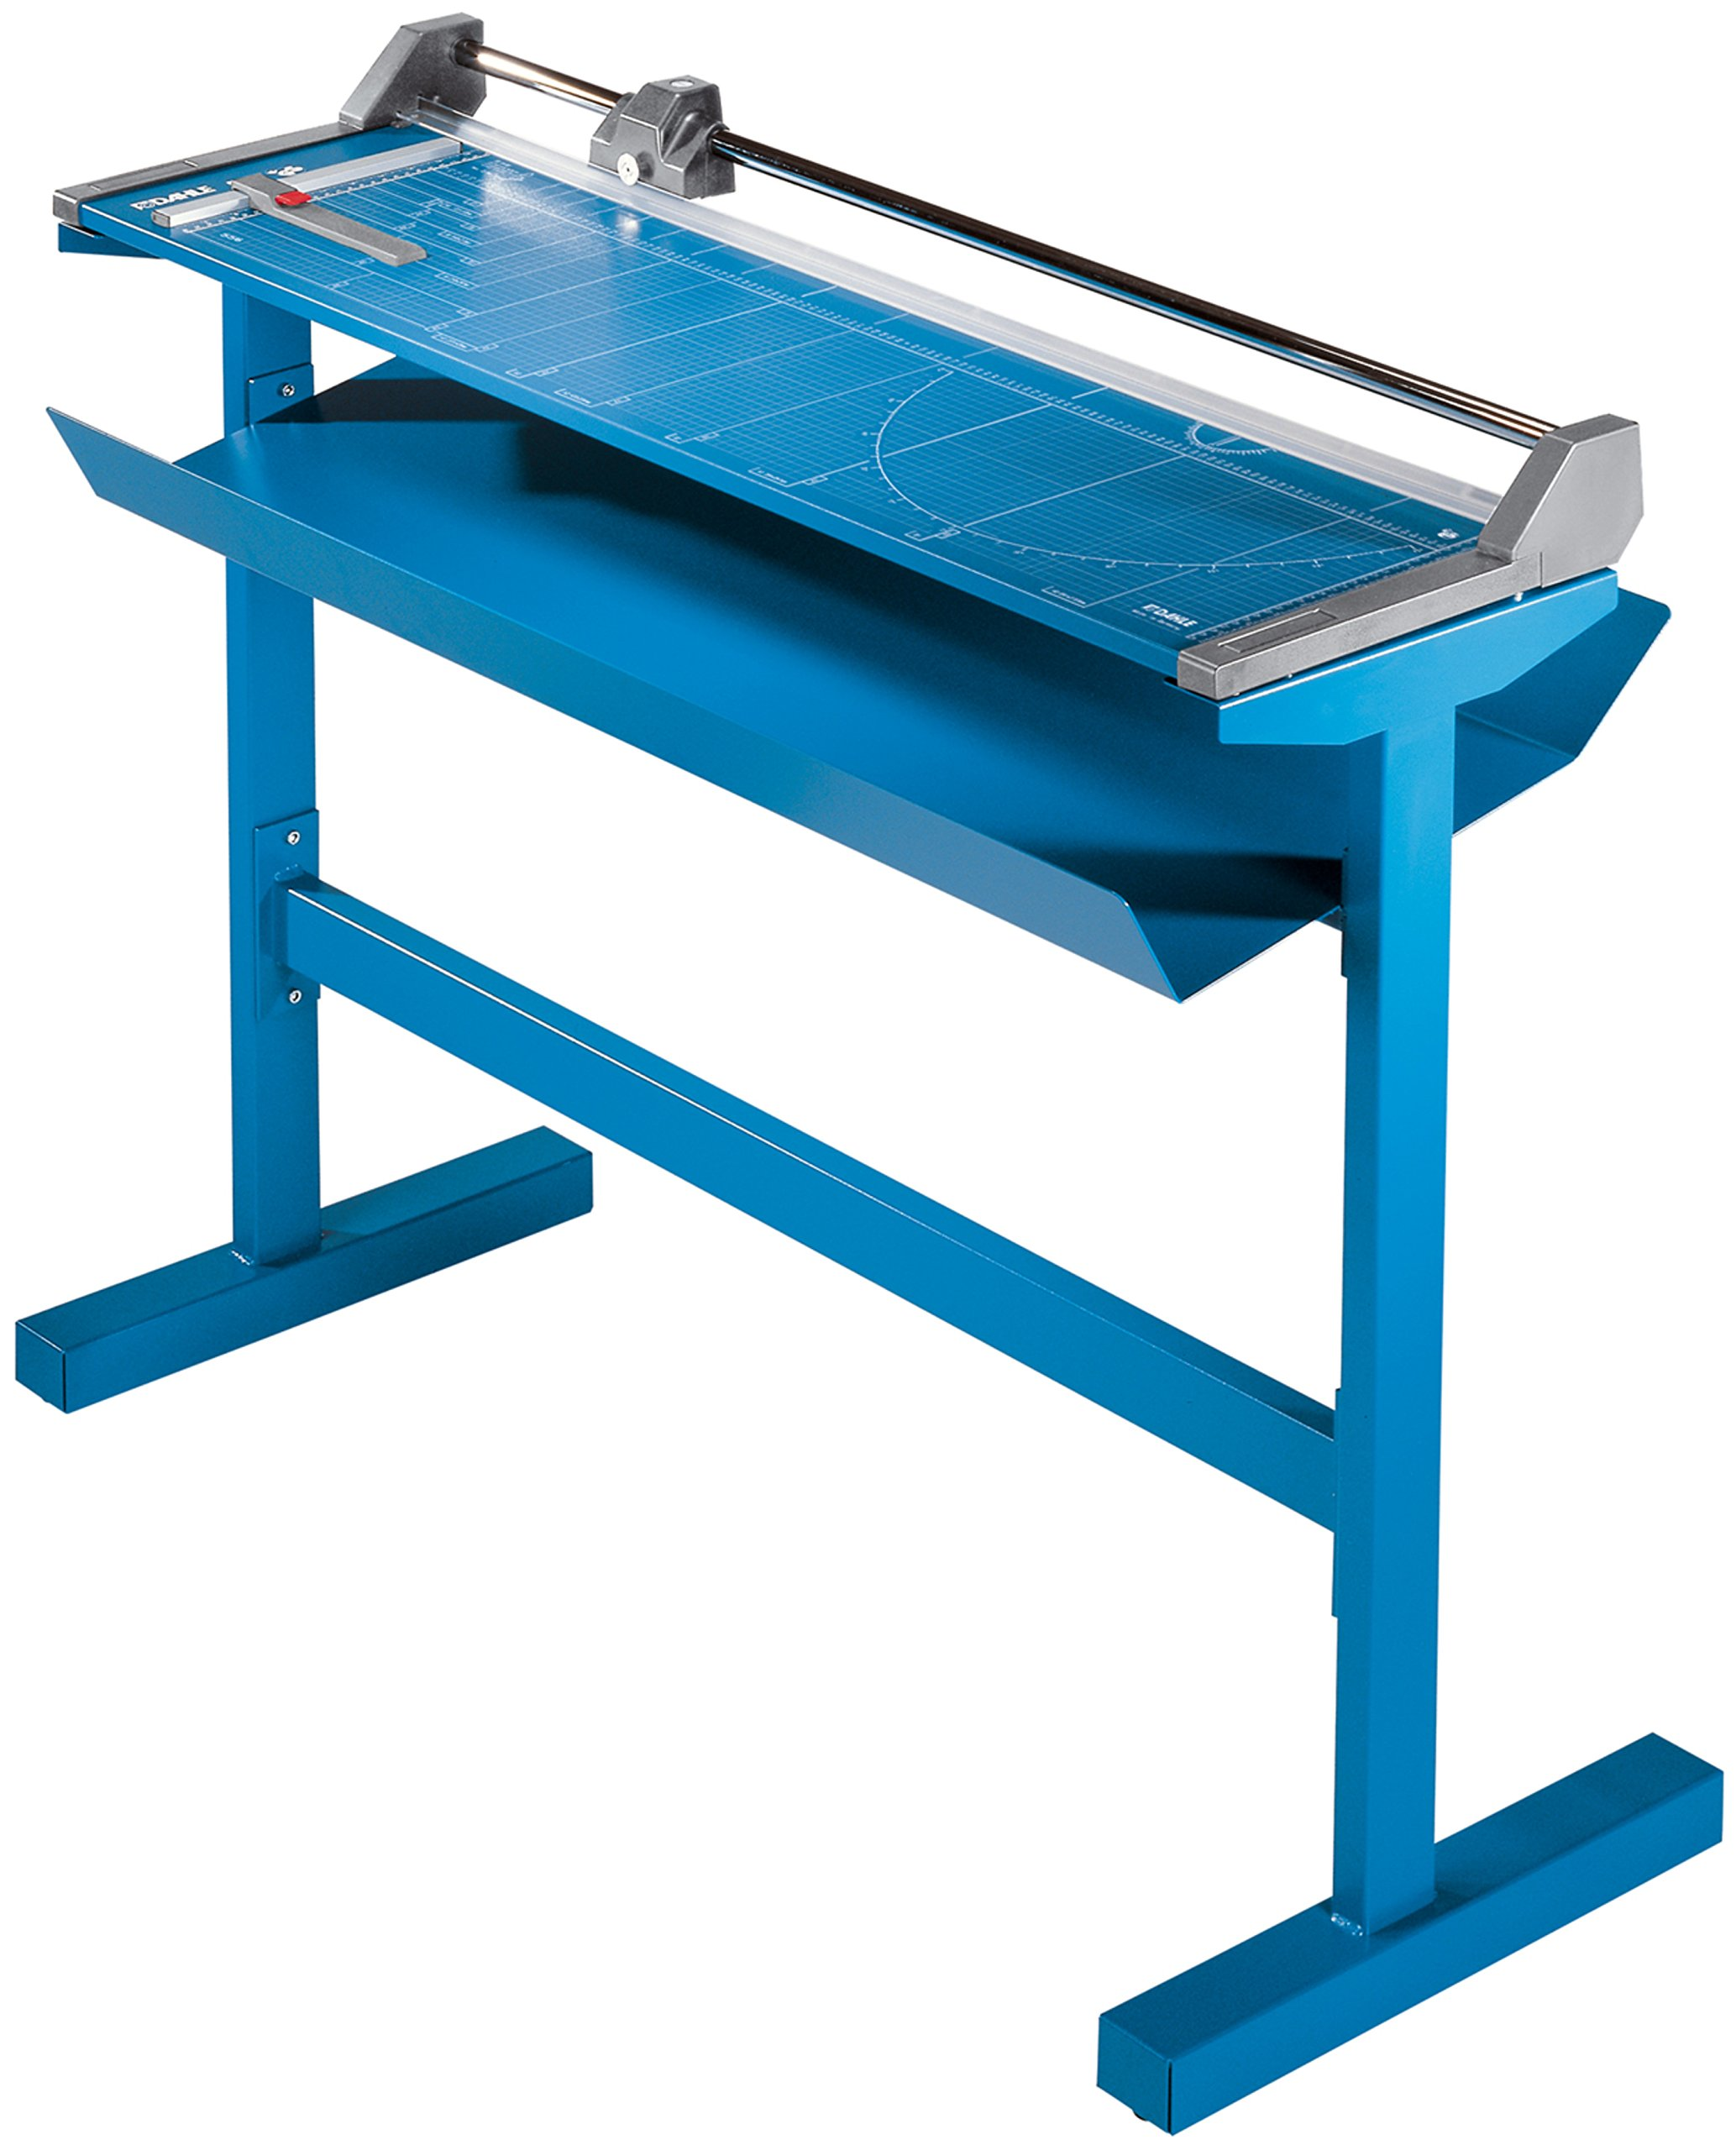 Dahle 558s Professional Rolling Trimmer w/stand, 51-1/8'' Cut Length, 12 Sheet Capacity, Self-Sharpening, Automatic Clamp, German Engineered Paper Cutter